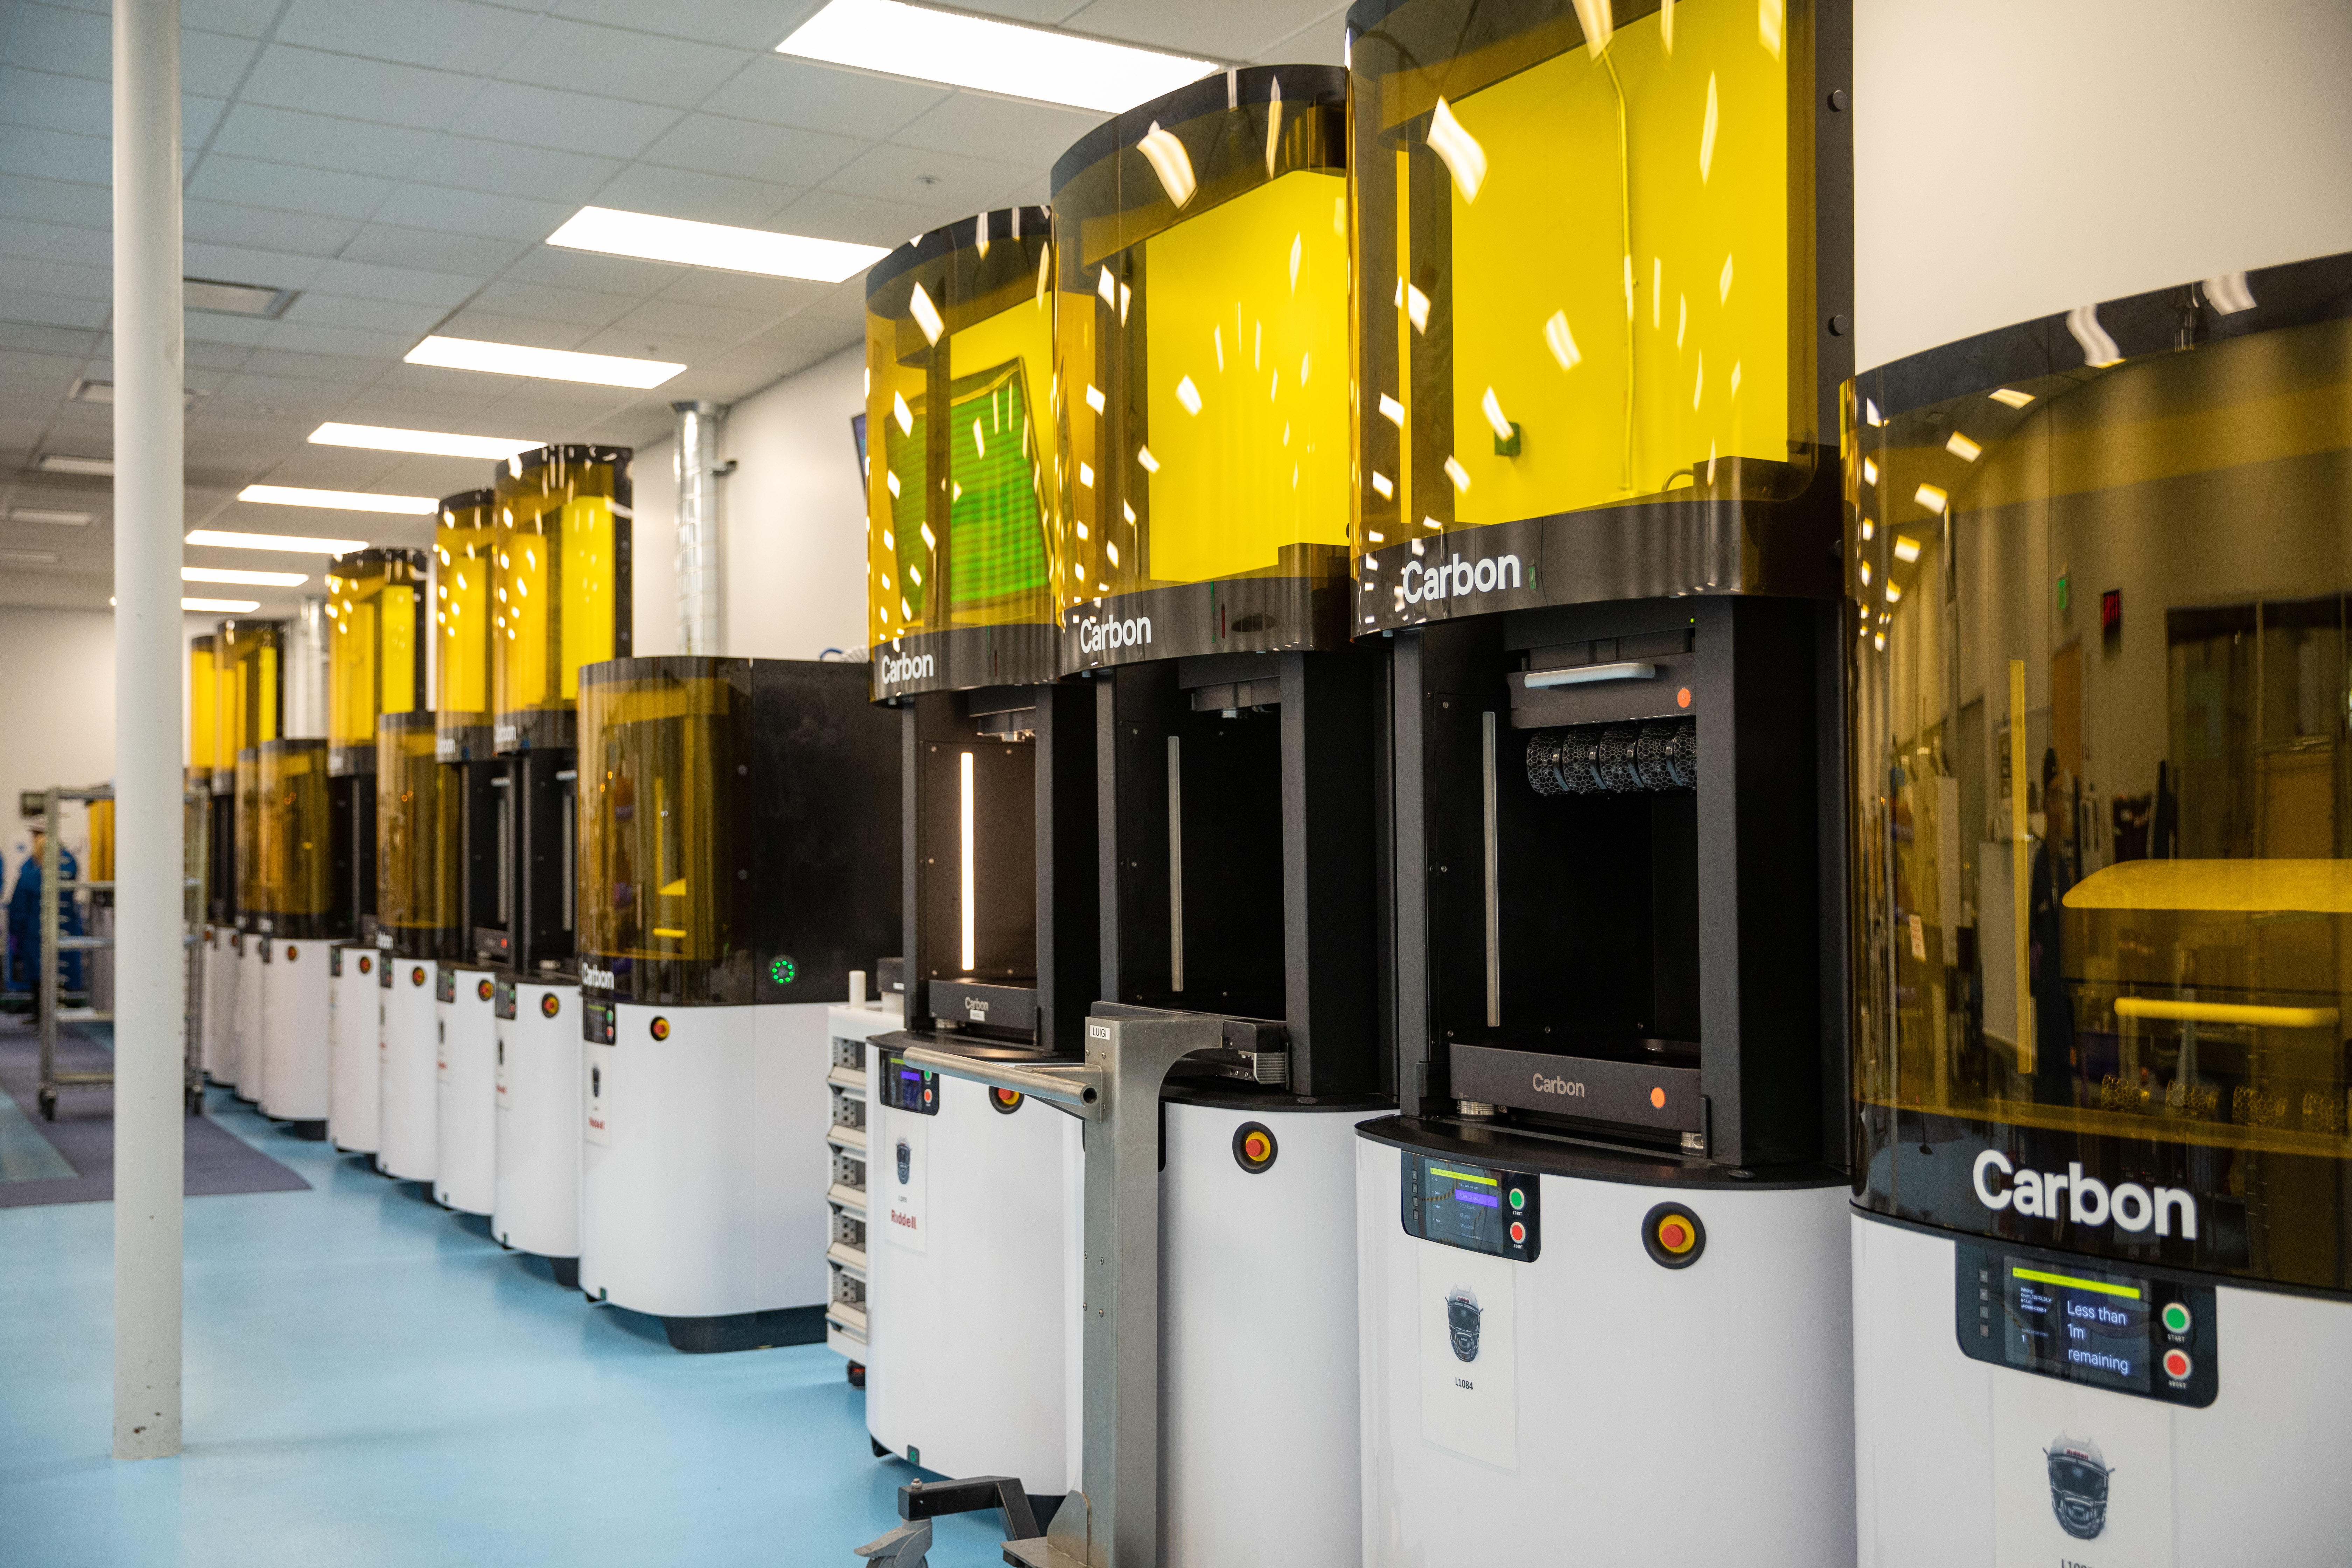 Carbon's L1 3D printers can make products with a wide variety of properties, from hard plastic to squishy shock absorbing materials in shoes and helmets.